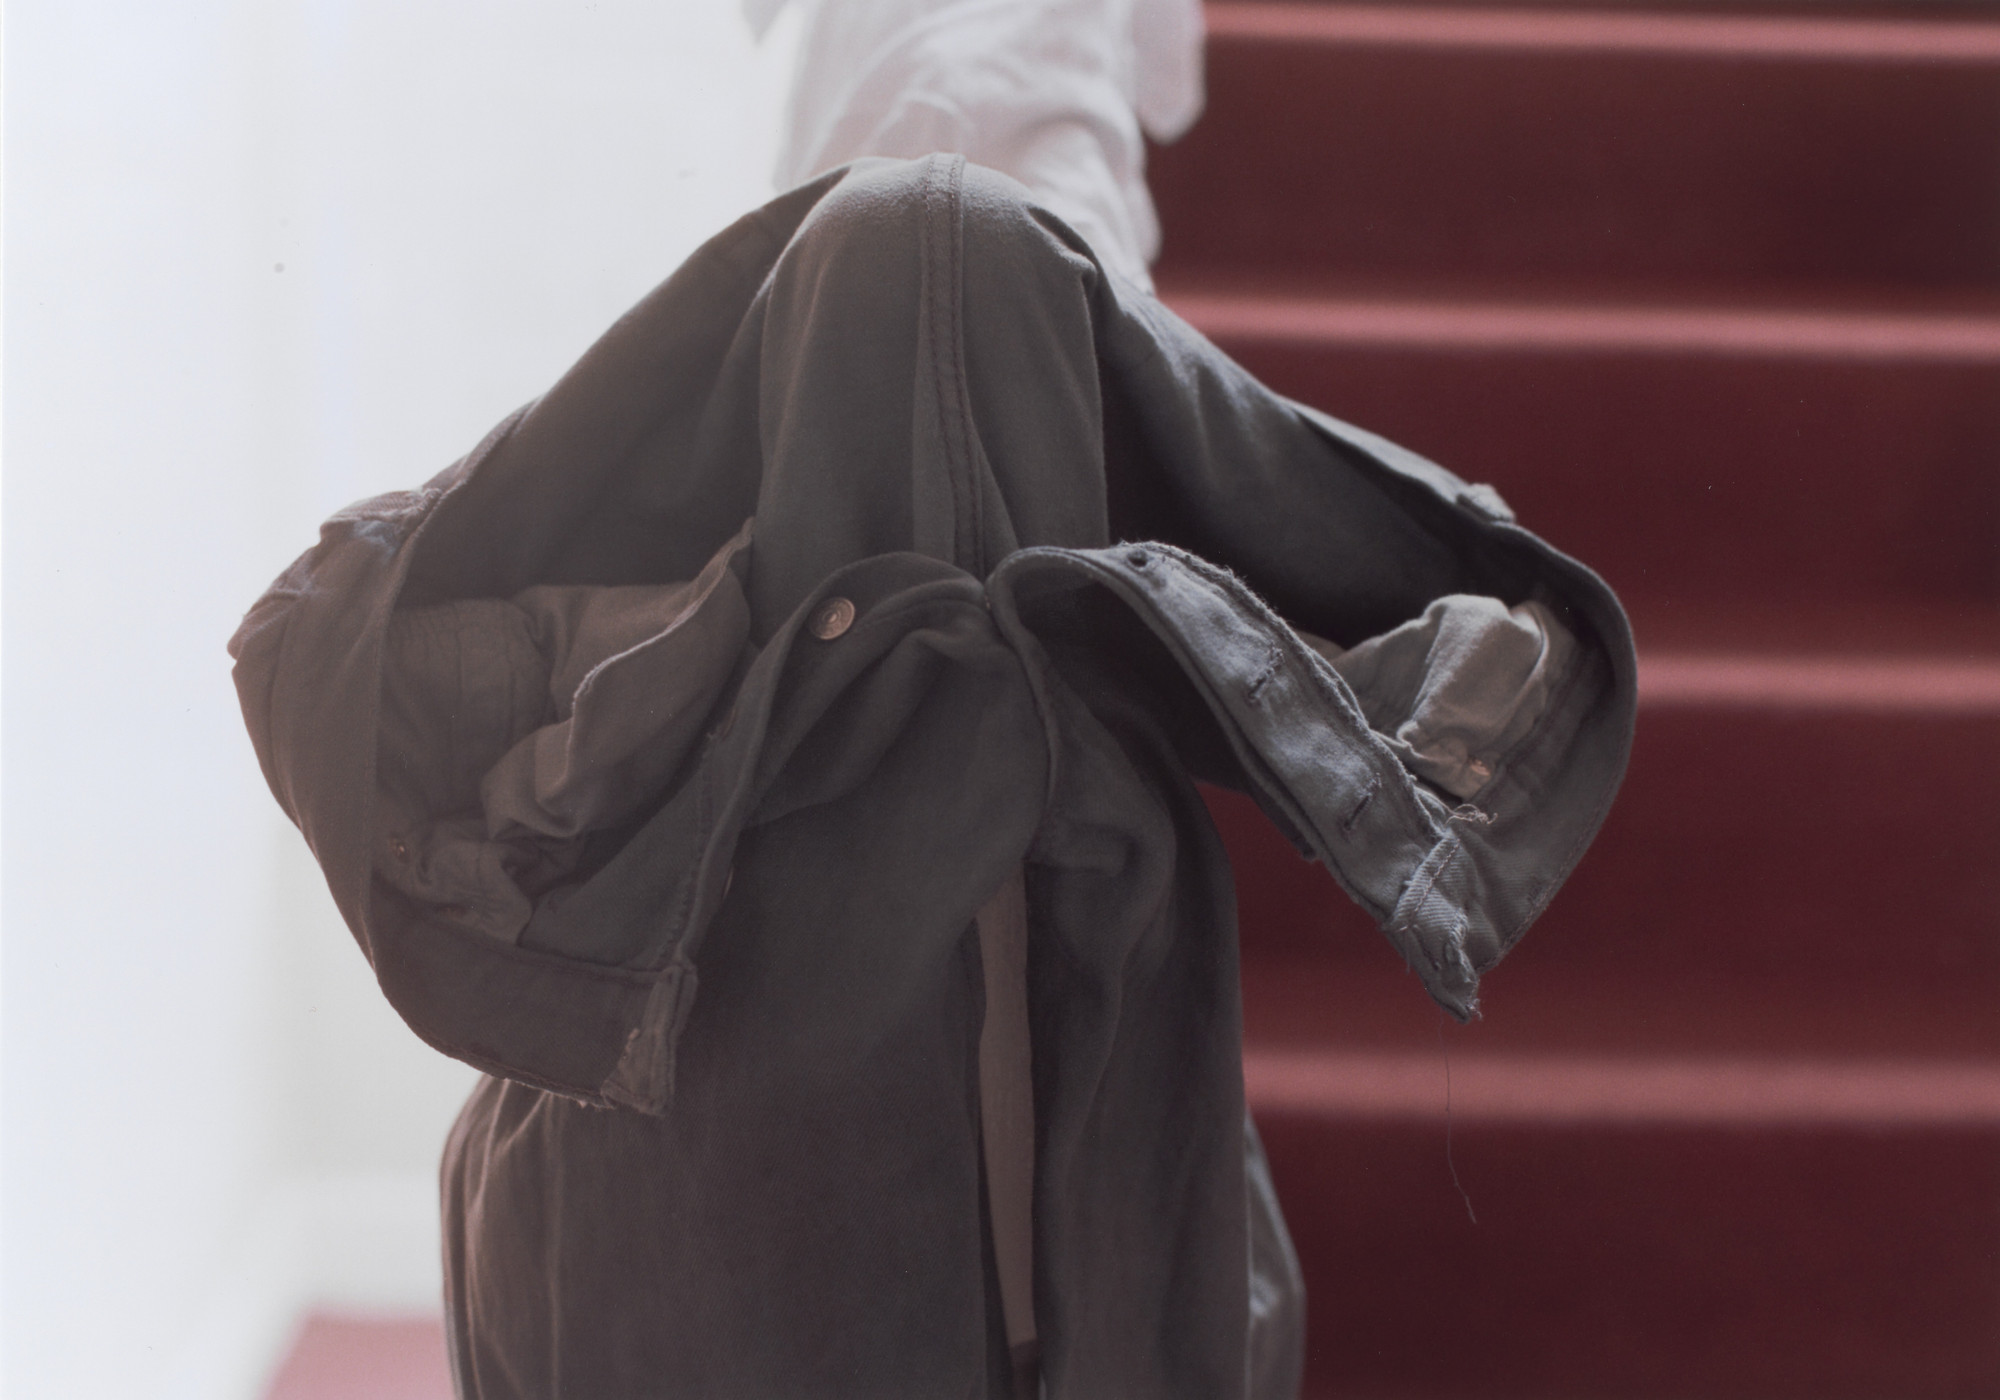 Wolfgang Tillmans. grey jeans over stair post. 1991